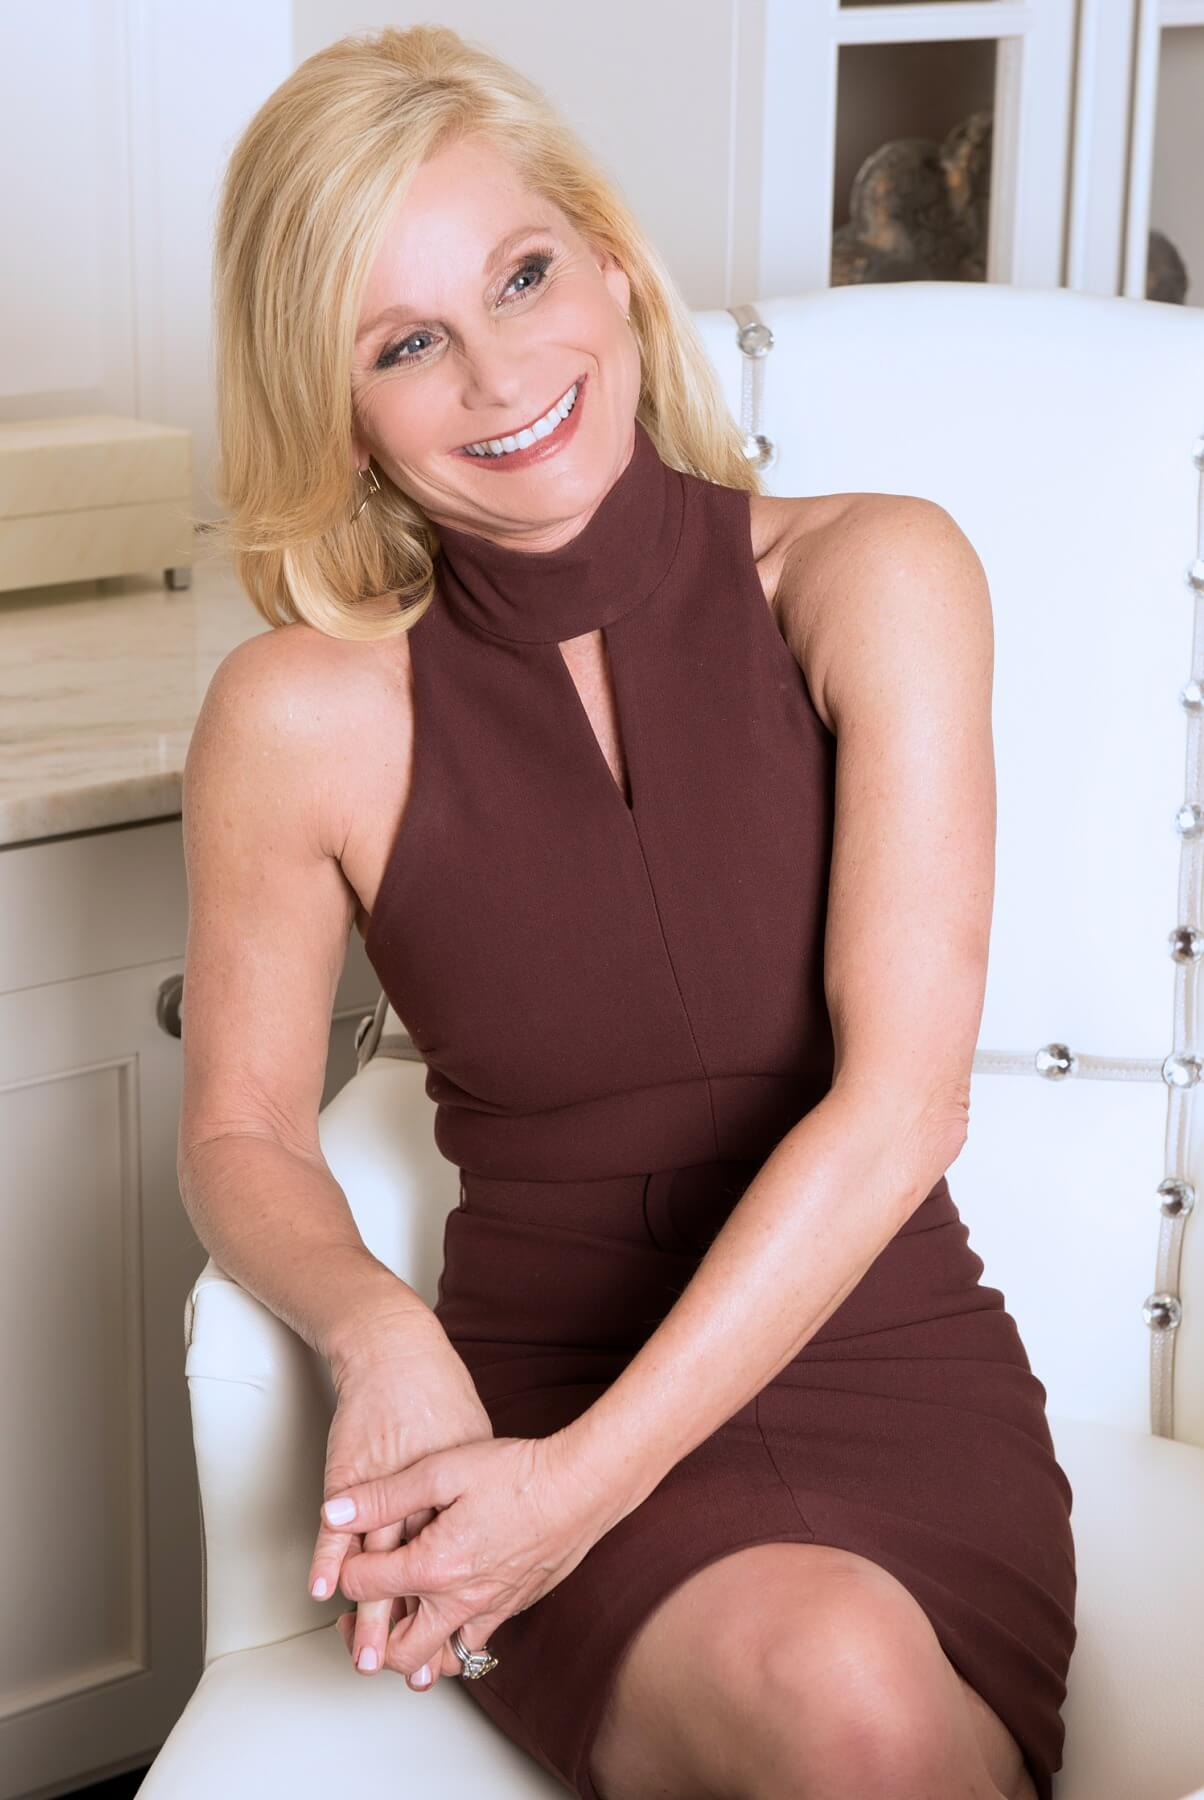 Welcome Janet Ayers as today's FACE of Nashville!